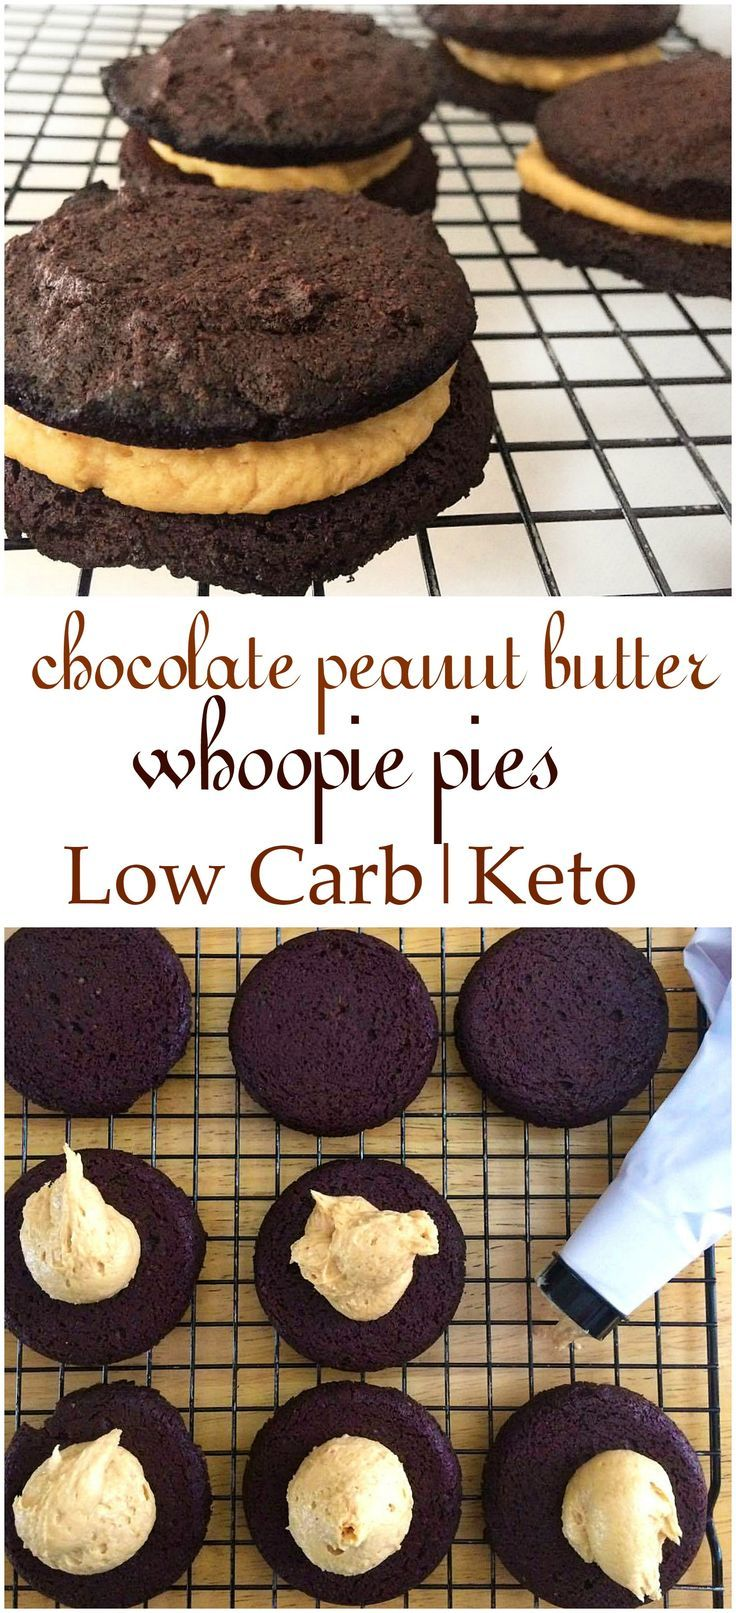 Low Carb Schokoladen Erdnussbutter Whoopie Pies   - OUR KETO/LOW CARB RECIPES -